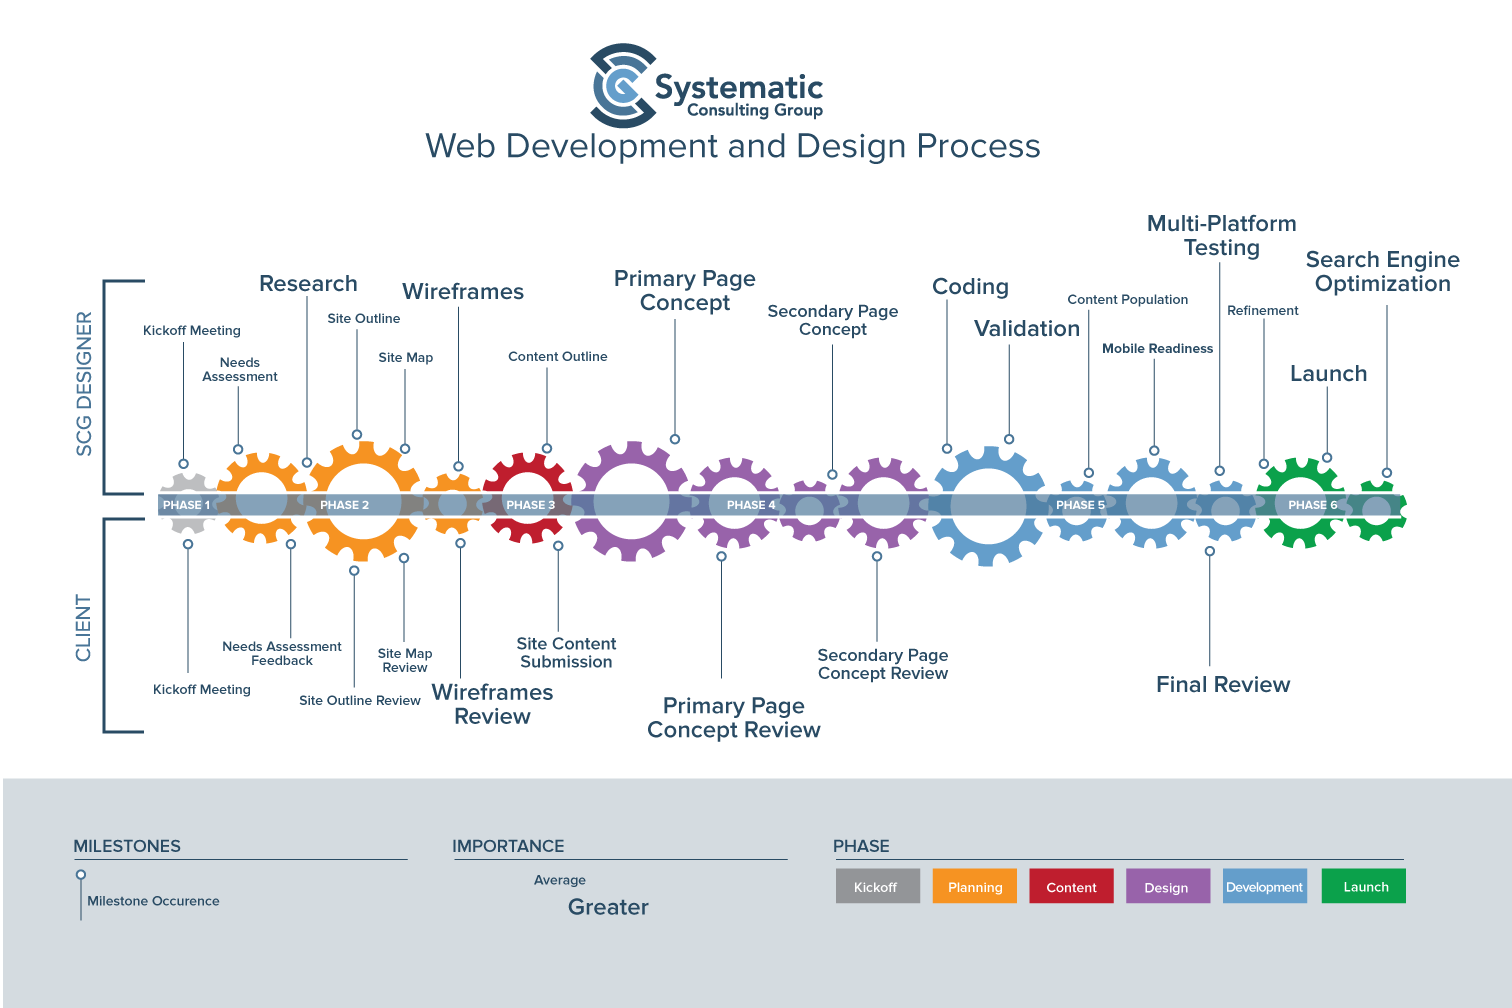 Web Development amp Design Systematic Consulting Group